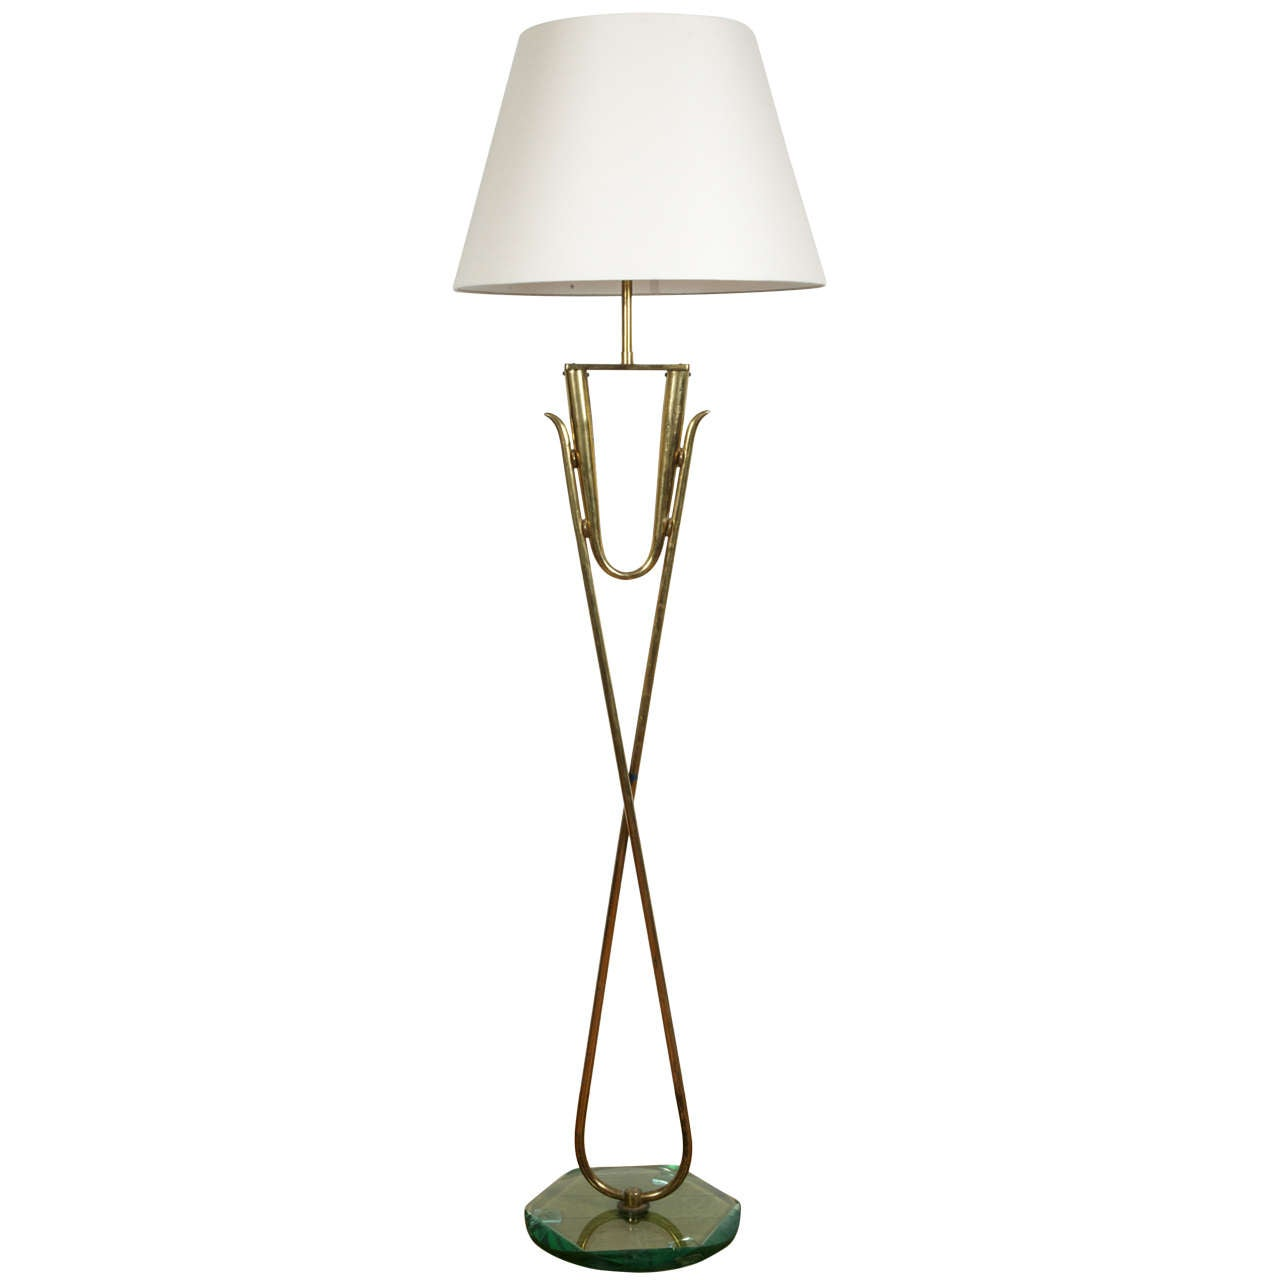 Floor Lamp 1960s : Gilt brass and glass floor lamp italy  s for sale at